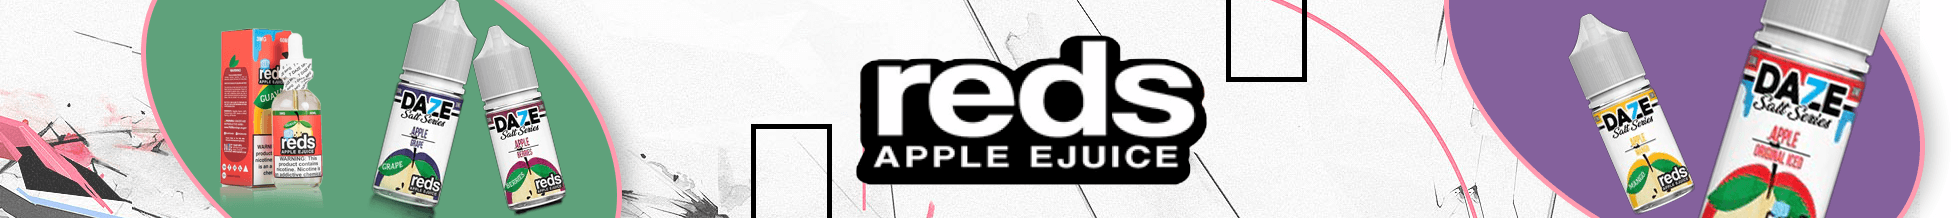 red-s-apple-e-juice.png